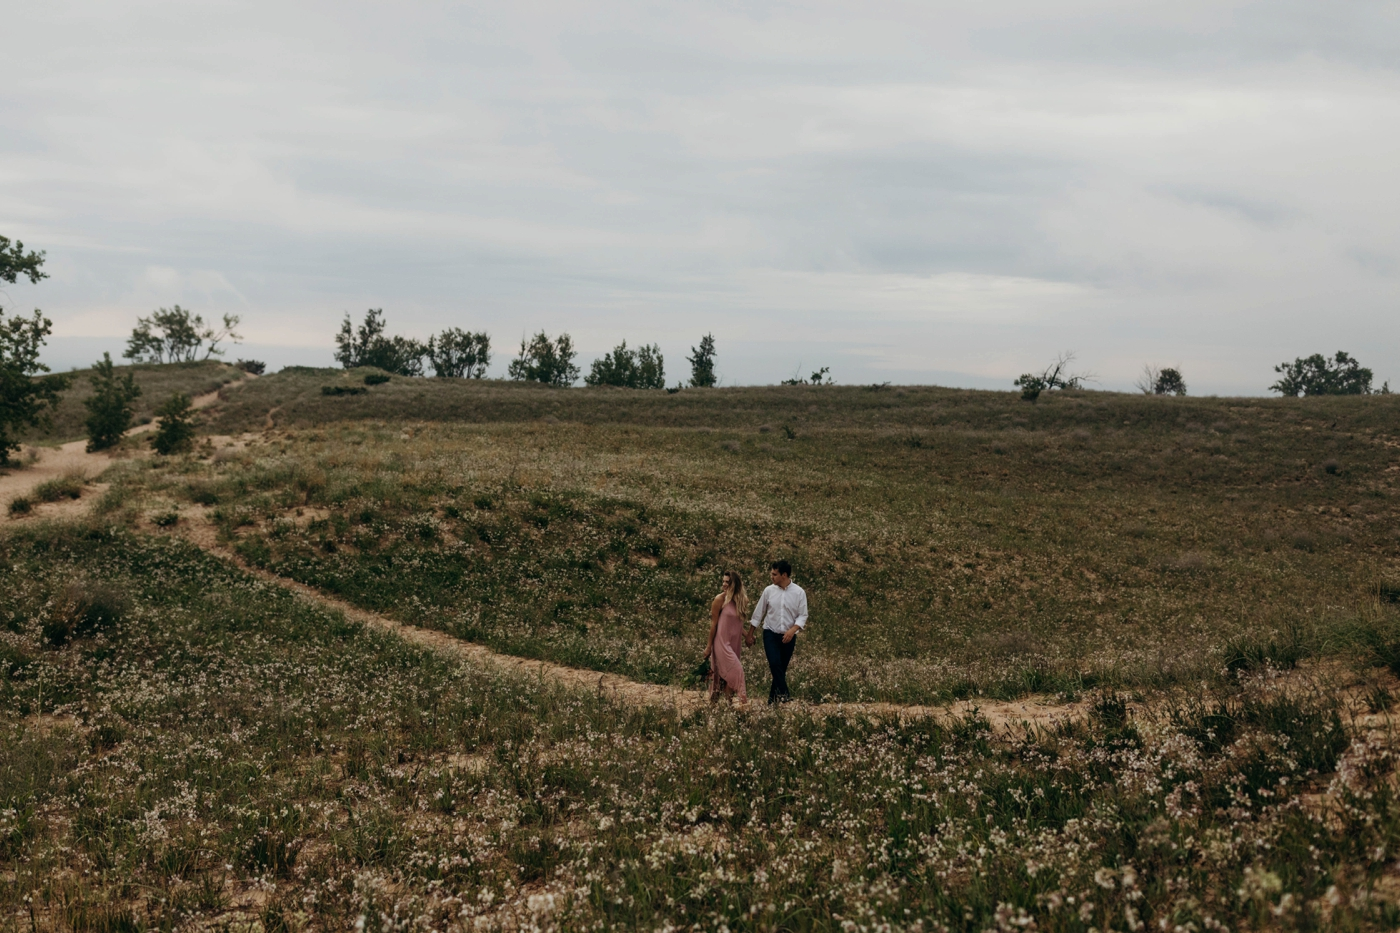 Sleeping_Bear_Dunes_Couples_Adventure_Session_Adventure_Wedding_Photographer_Hiking_with_Heels_Brett+Emily-43.jpg